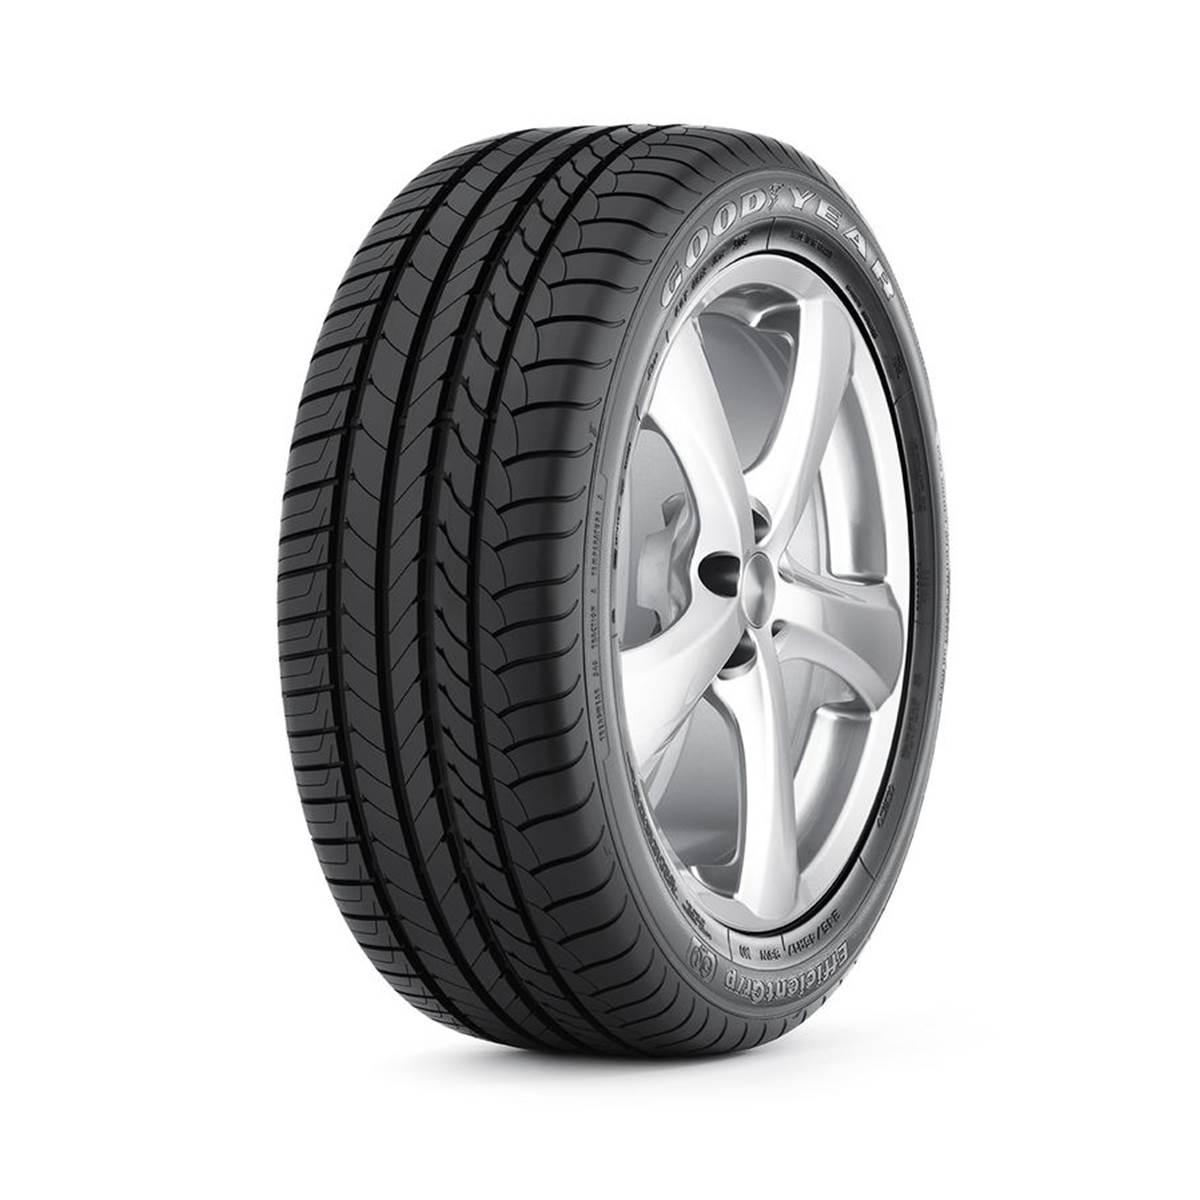 Pneu Runflat GOODYEAR 255/40R19 100Y Efficientgrip ROF AOE XL